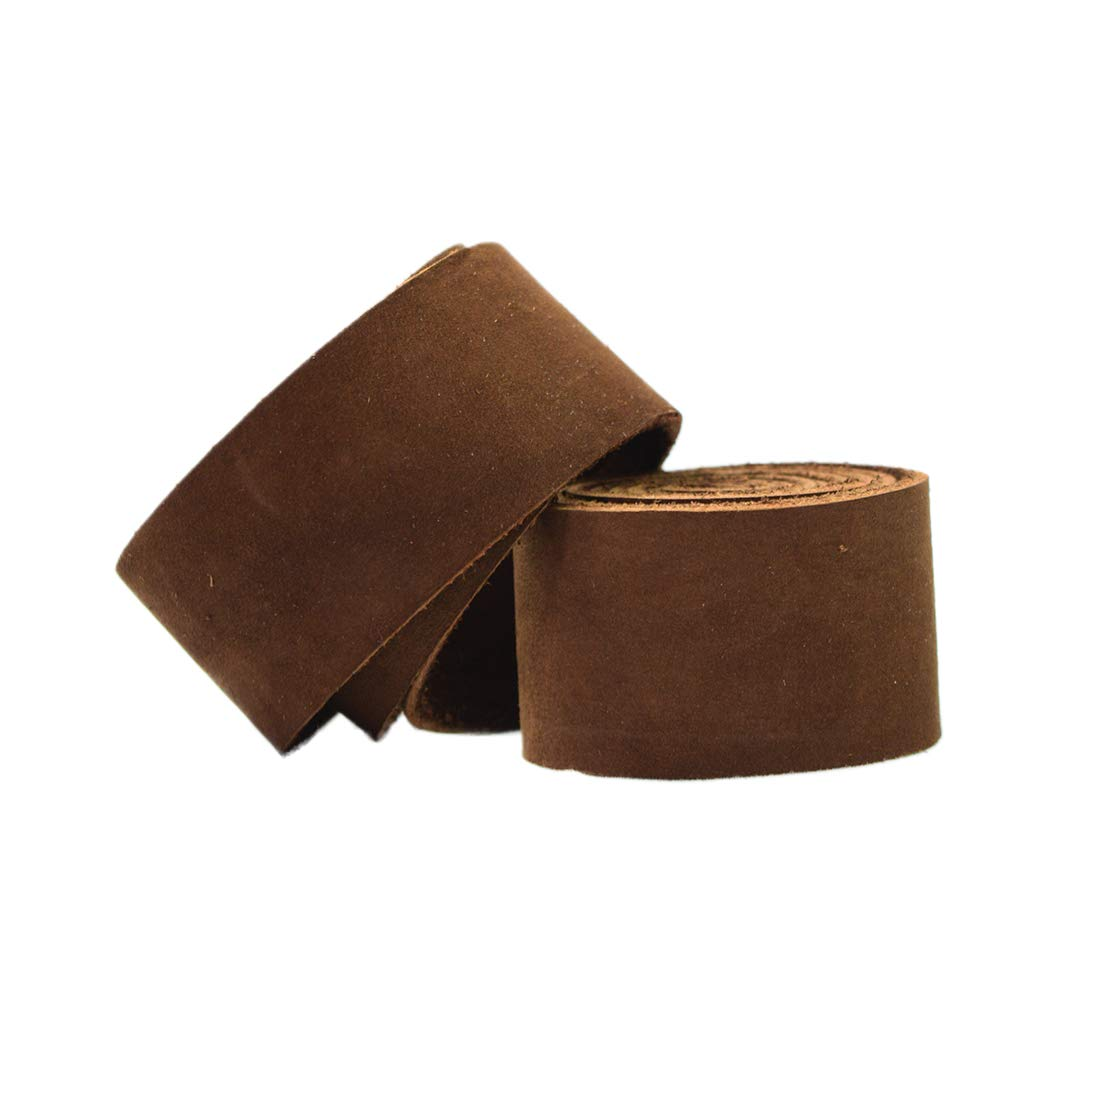 Hide & Drink, Leather Strong Strap (1.25 in.) Wide, Cord Braiding String, Medium Weight (1.8mm Thick) (75 in.) Long for Crafts/Tooling/Workshop :: Swayze Suede